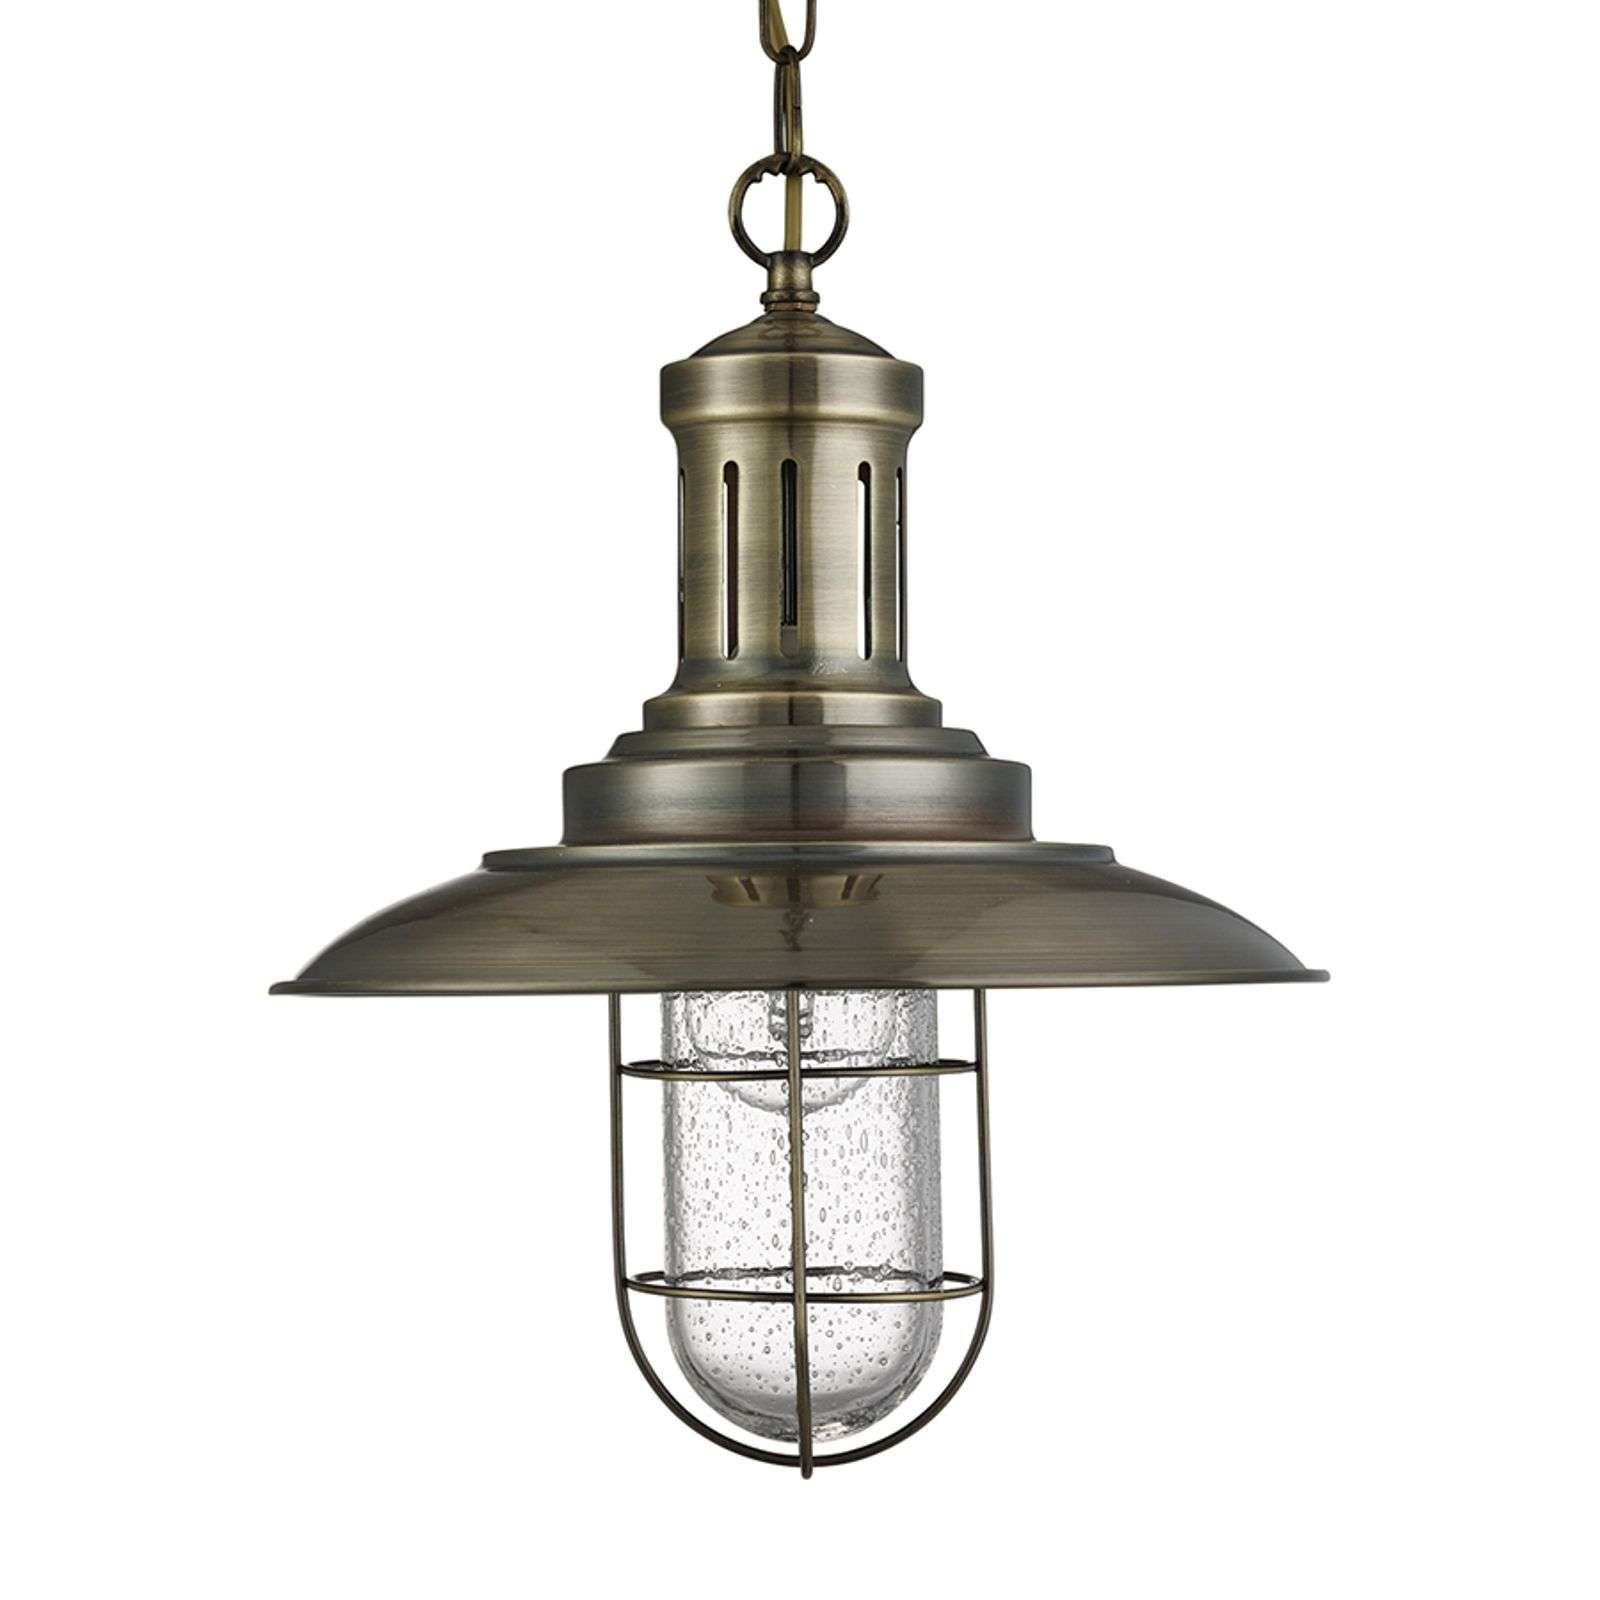 Suspension Fisherman antique avec grille